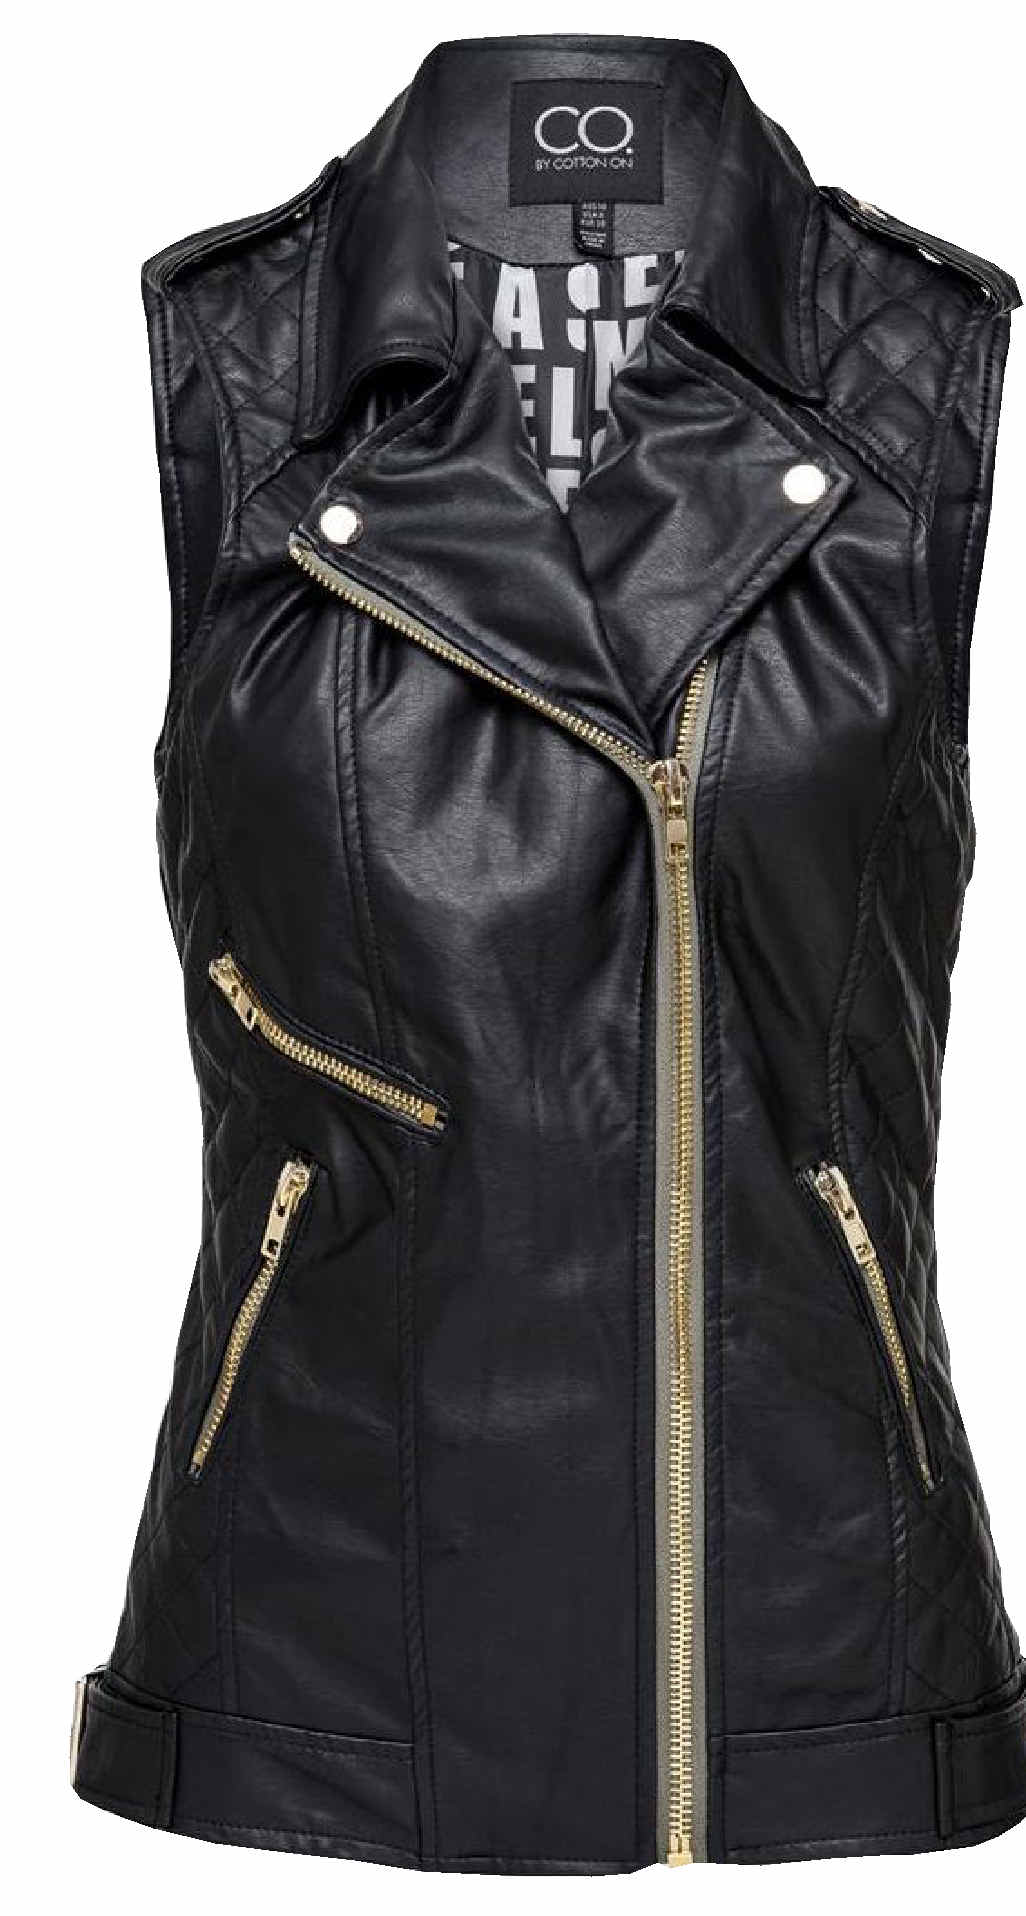 Biker faux leather vest, $49.95, Cotton On, Lismore and Ballina (check for availability) and cottonon.com.au